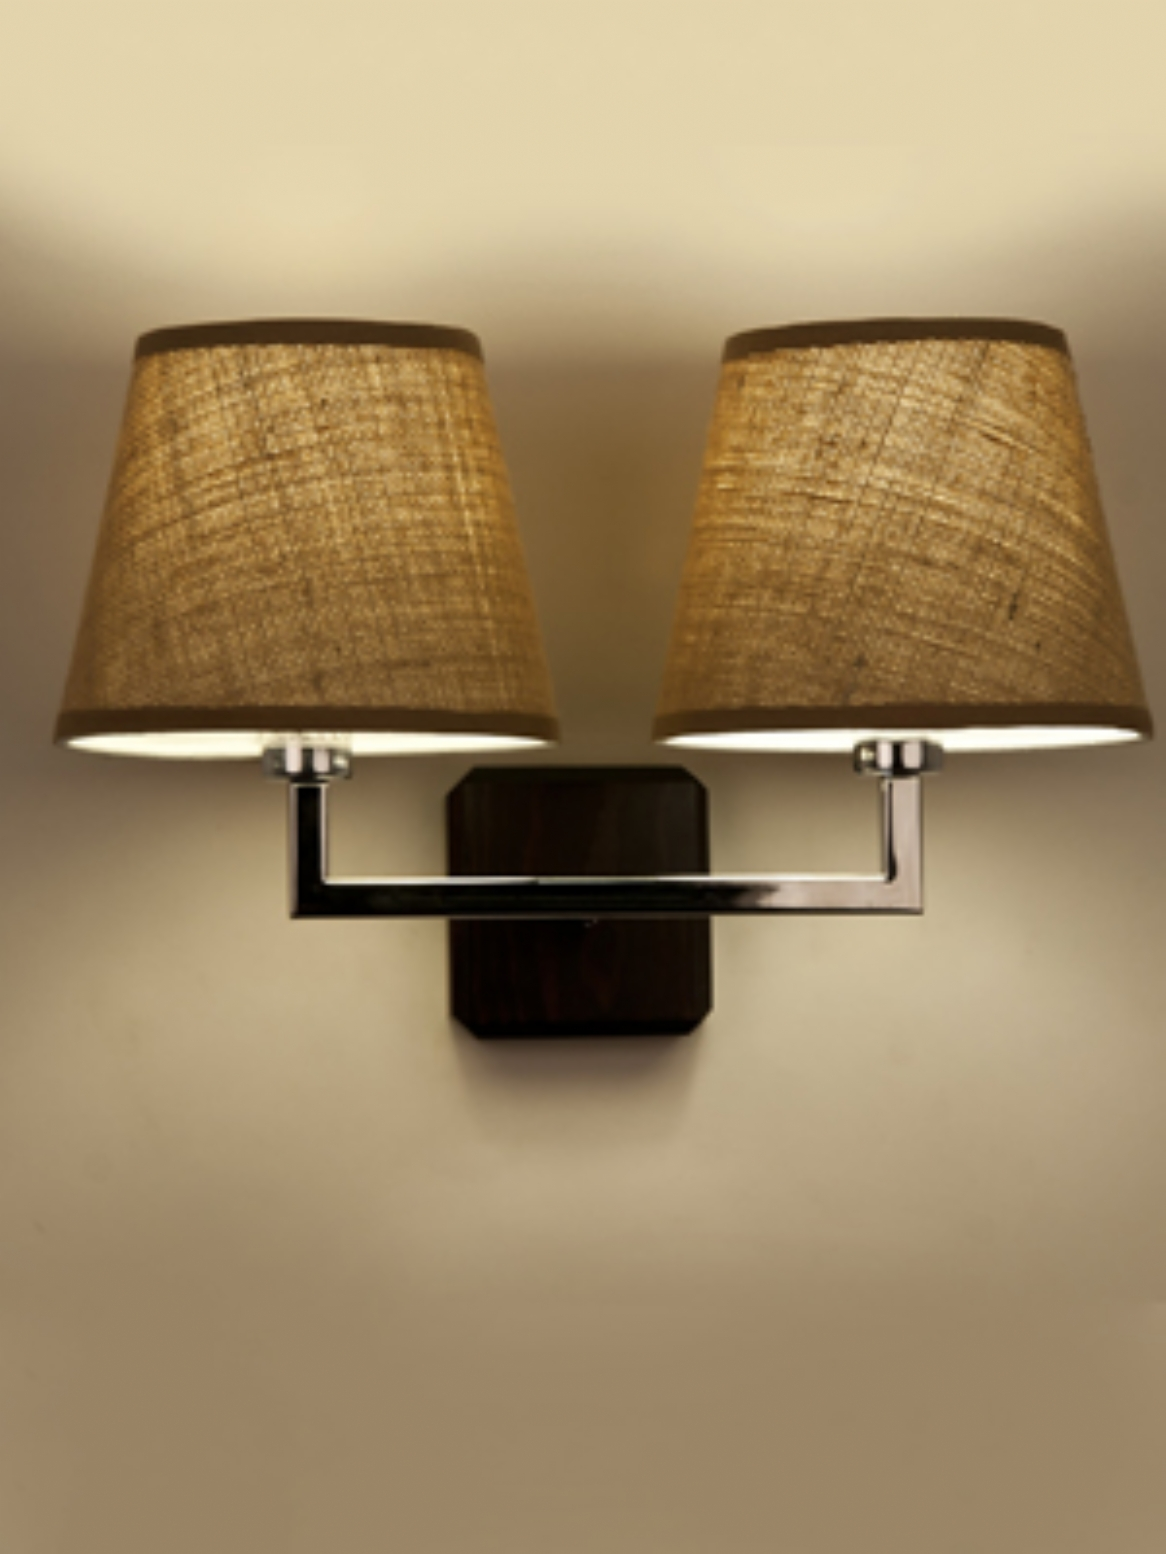 Wall Sconces With Lamp Shades : Fabric wall light shades - upgrade your interior design on a small budget Warisan Lighting